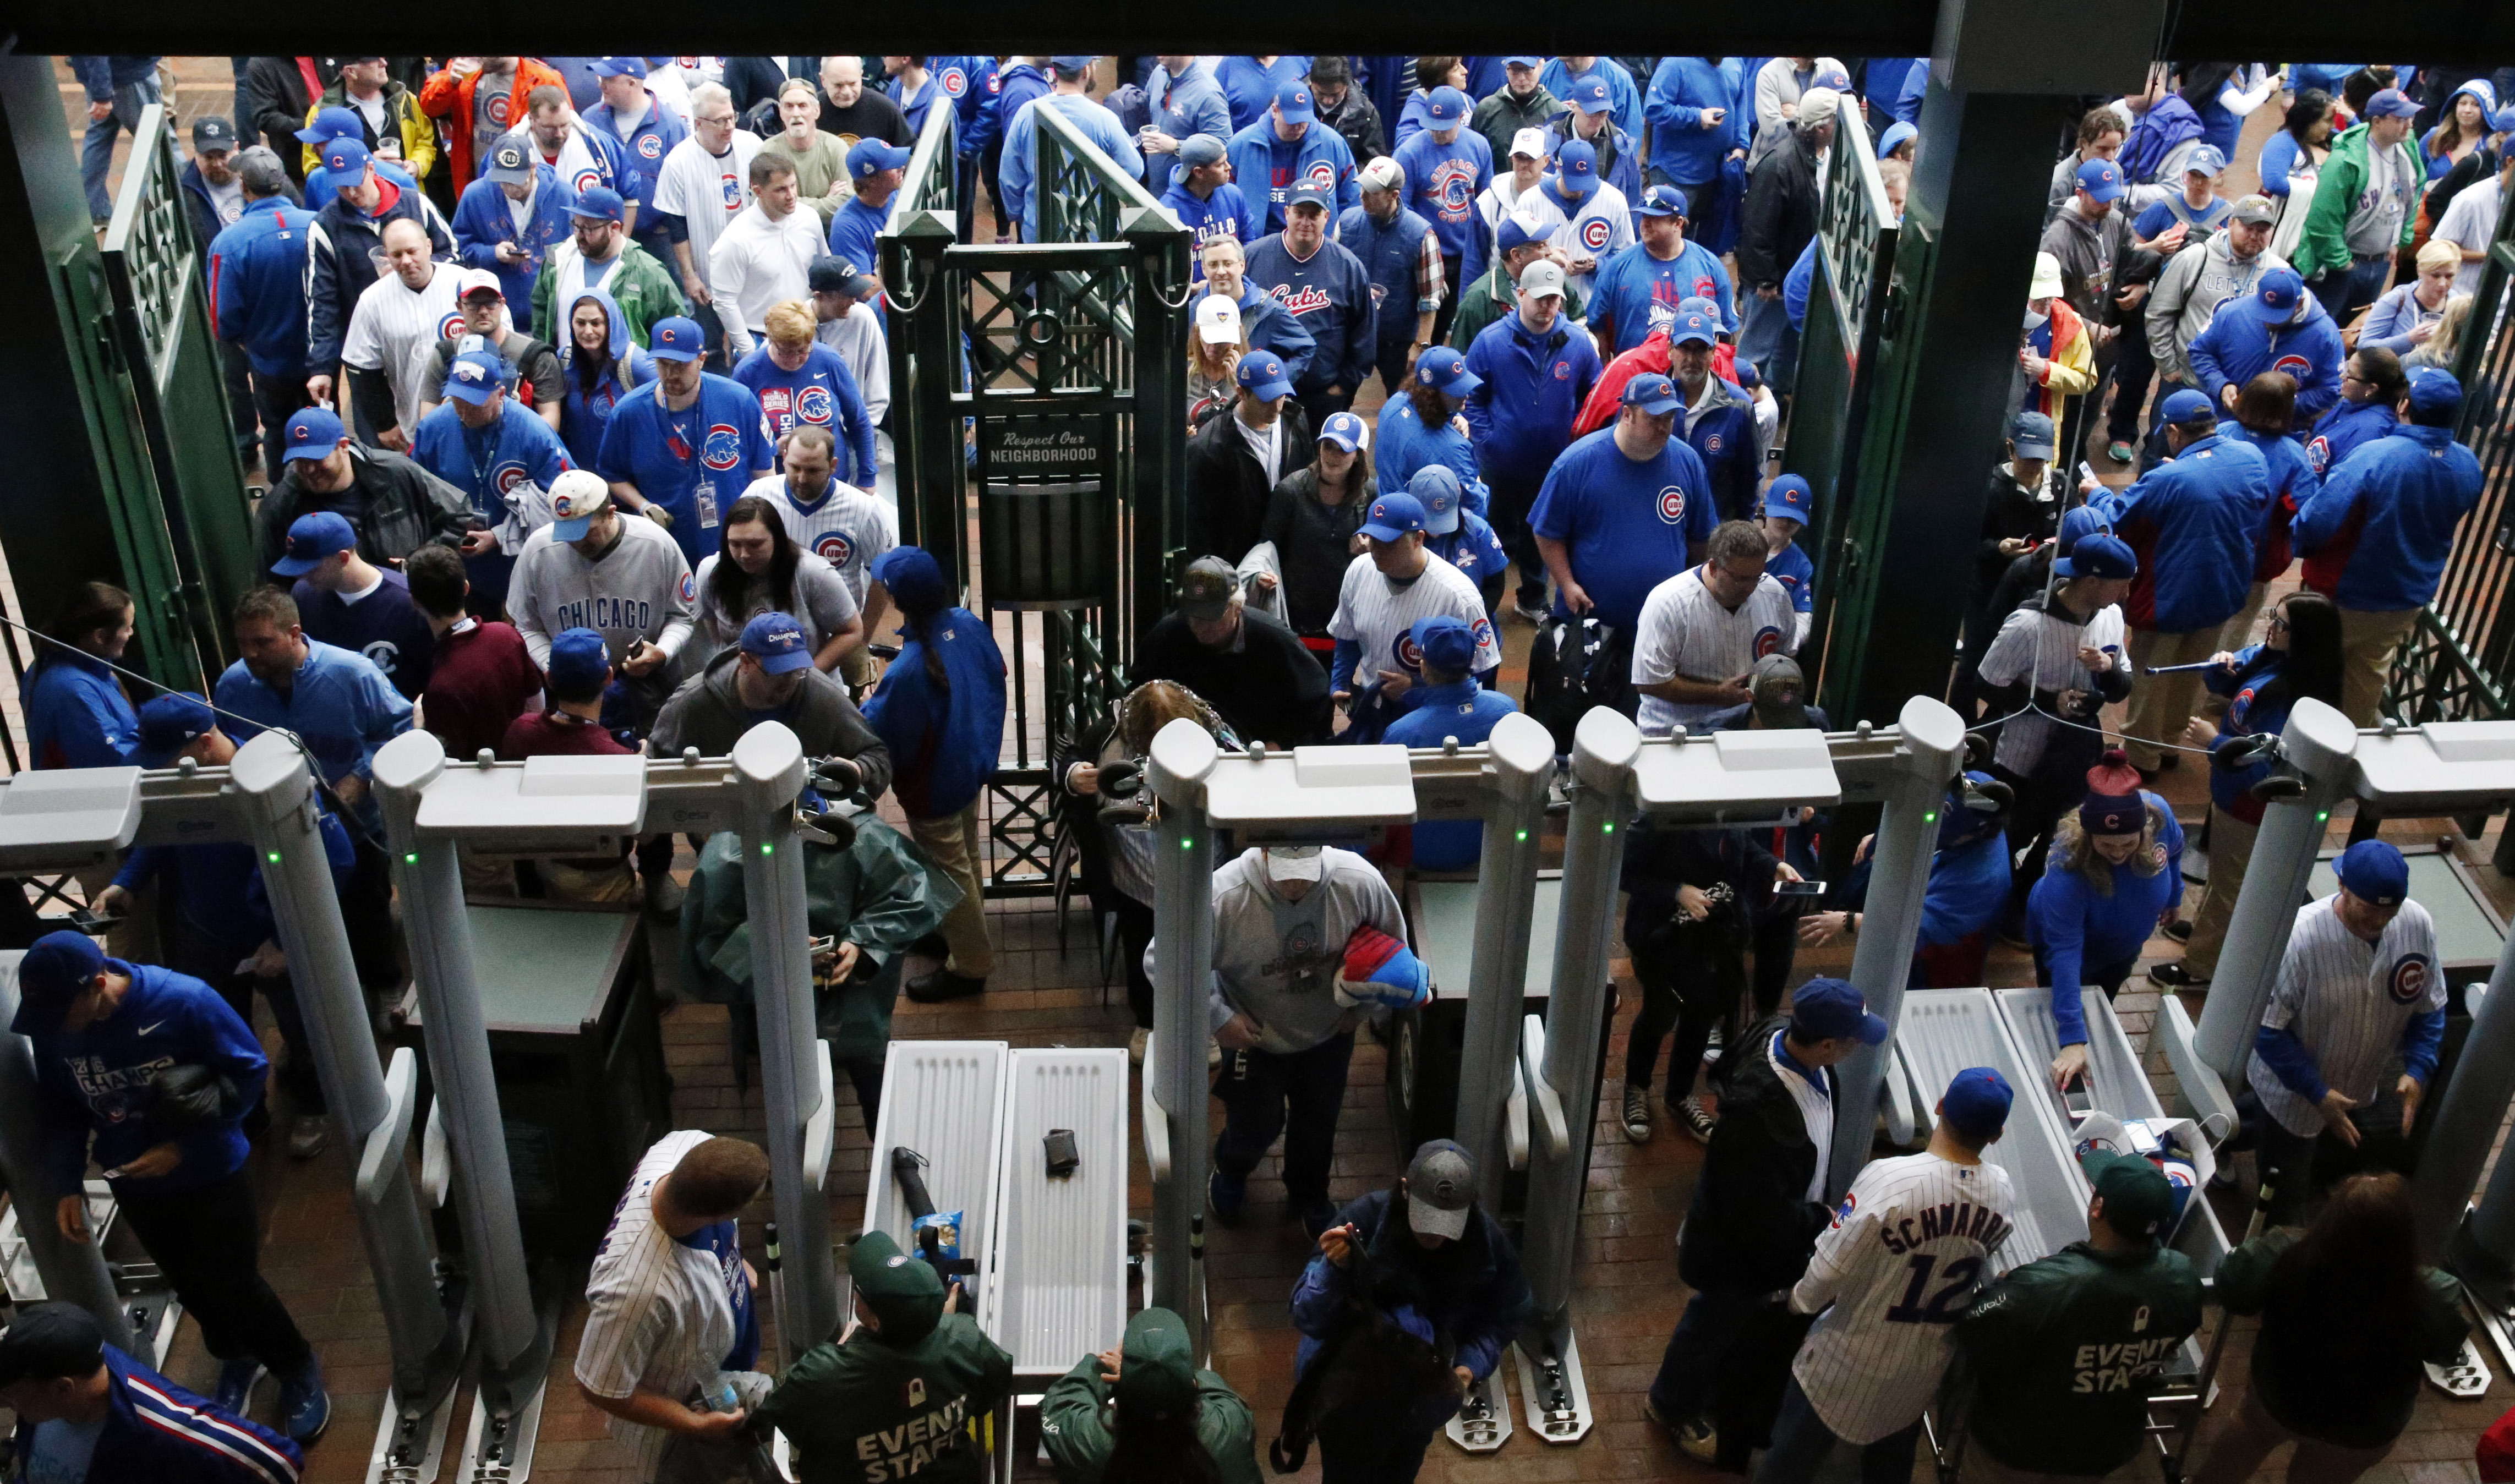 Fans line up outside Wrigley Field before the Cubs' home opener in Chicago. (AP Photo/Nam Y. Huh)